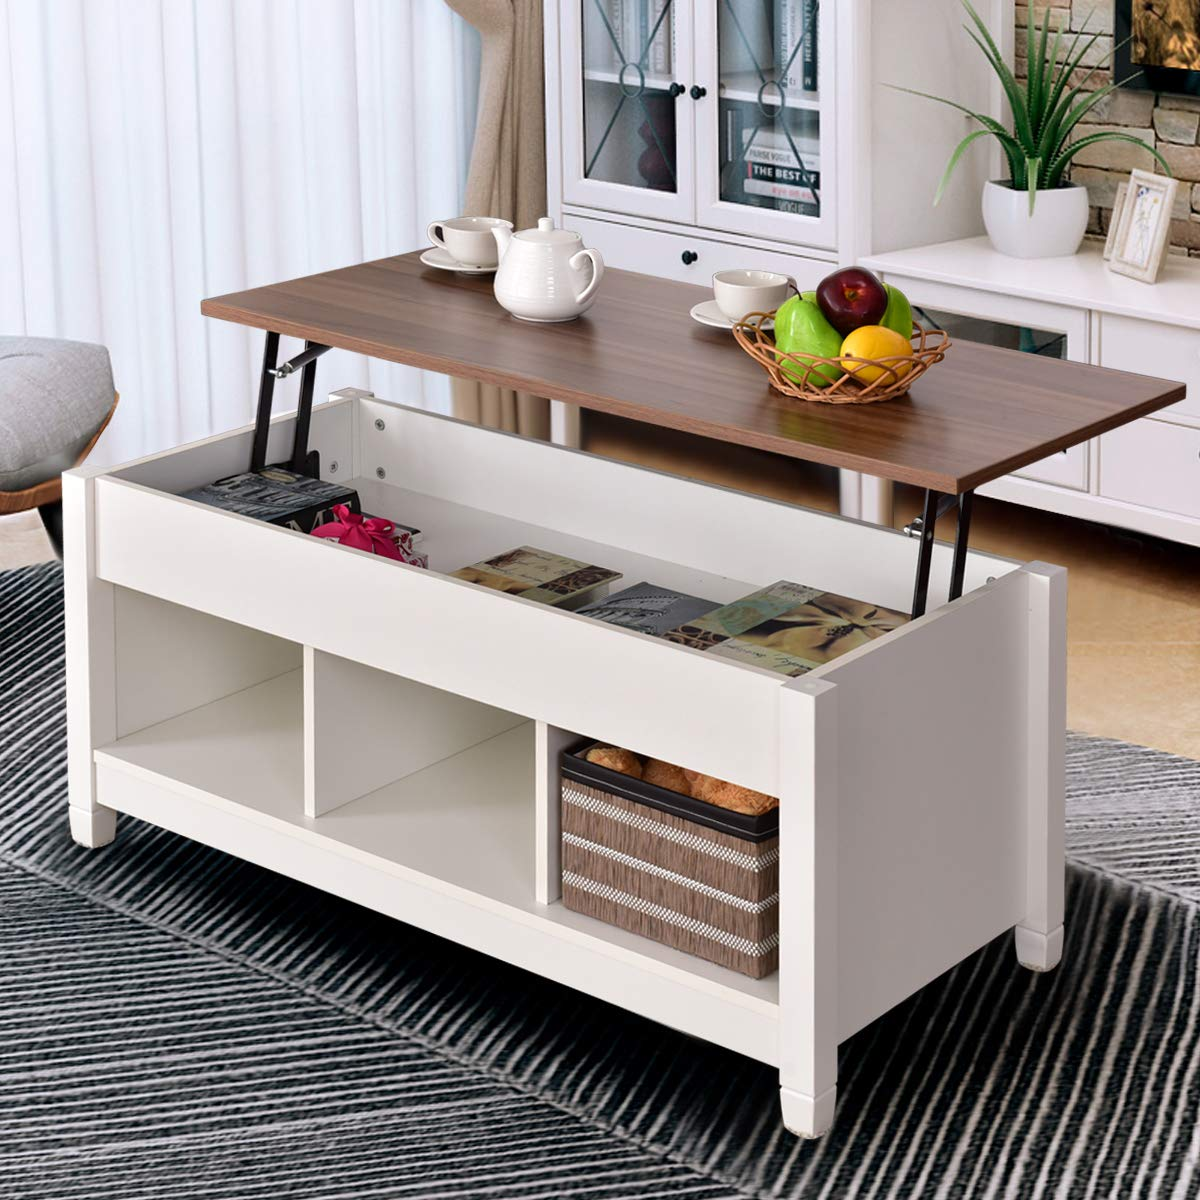 Amazon com tangkula coffee table lift top wood home living room modern lift top storage coffee table w hidden compartment lift tabletop furniture white